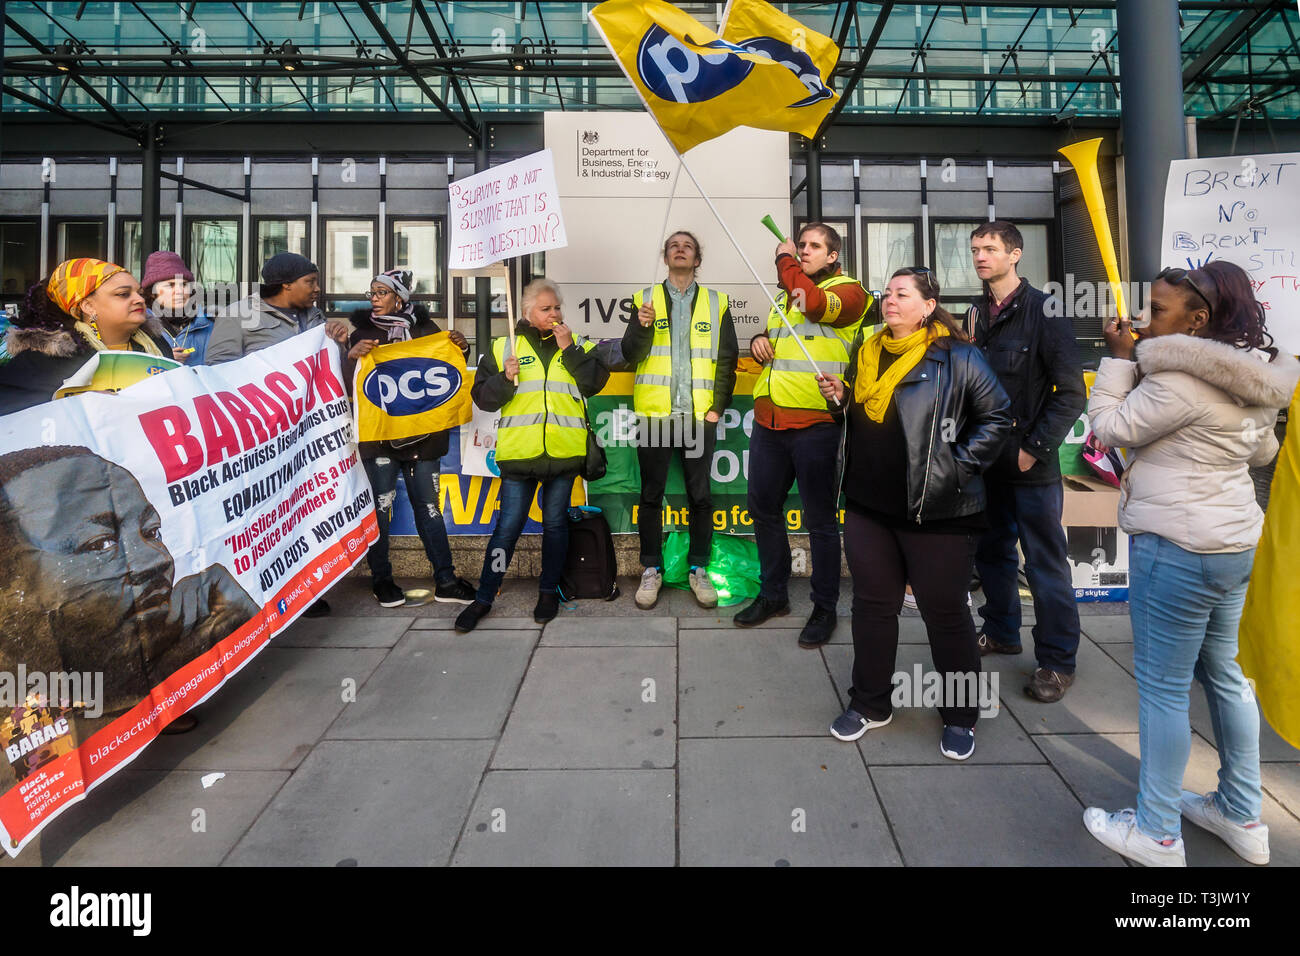 London, UK. 10th April 2019. Campaigners at the government department for Business, Energy and Industrial Strategy (BEIS) show solidarity with catering workers at the end of their three day strike for a living wage and decent terms and conditions. The workers are on poverty pay, outsourced by BEIS to Ararmark who have responded with threats of redundancies. Many  are also struggling financially because of their employer withholding of some of their pay following a change to their pay cycle. Credit: Peter Marshall/Alamy Live News - Stock Image